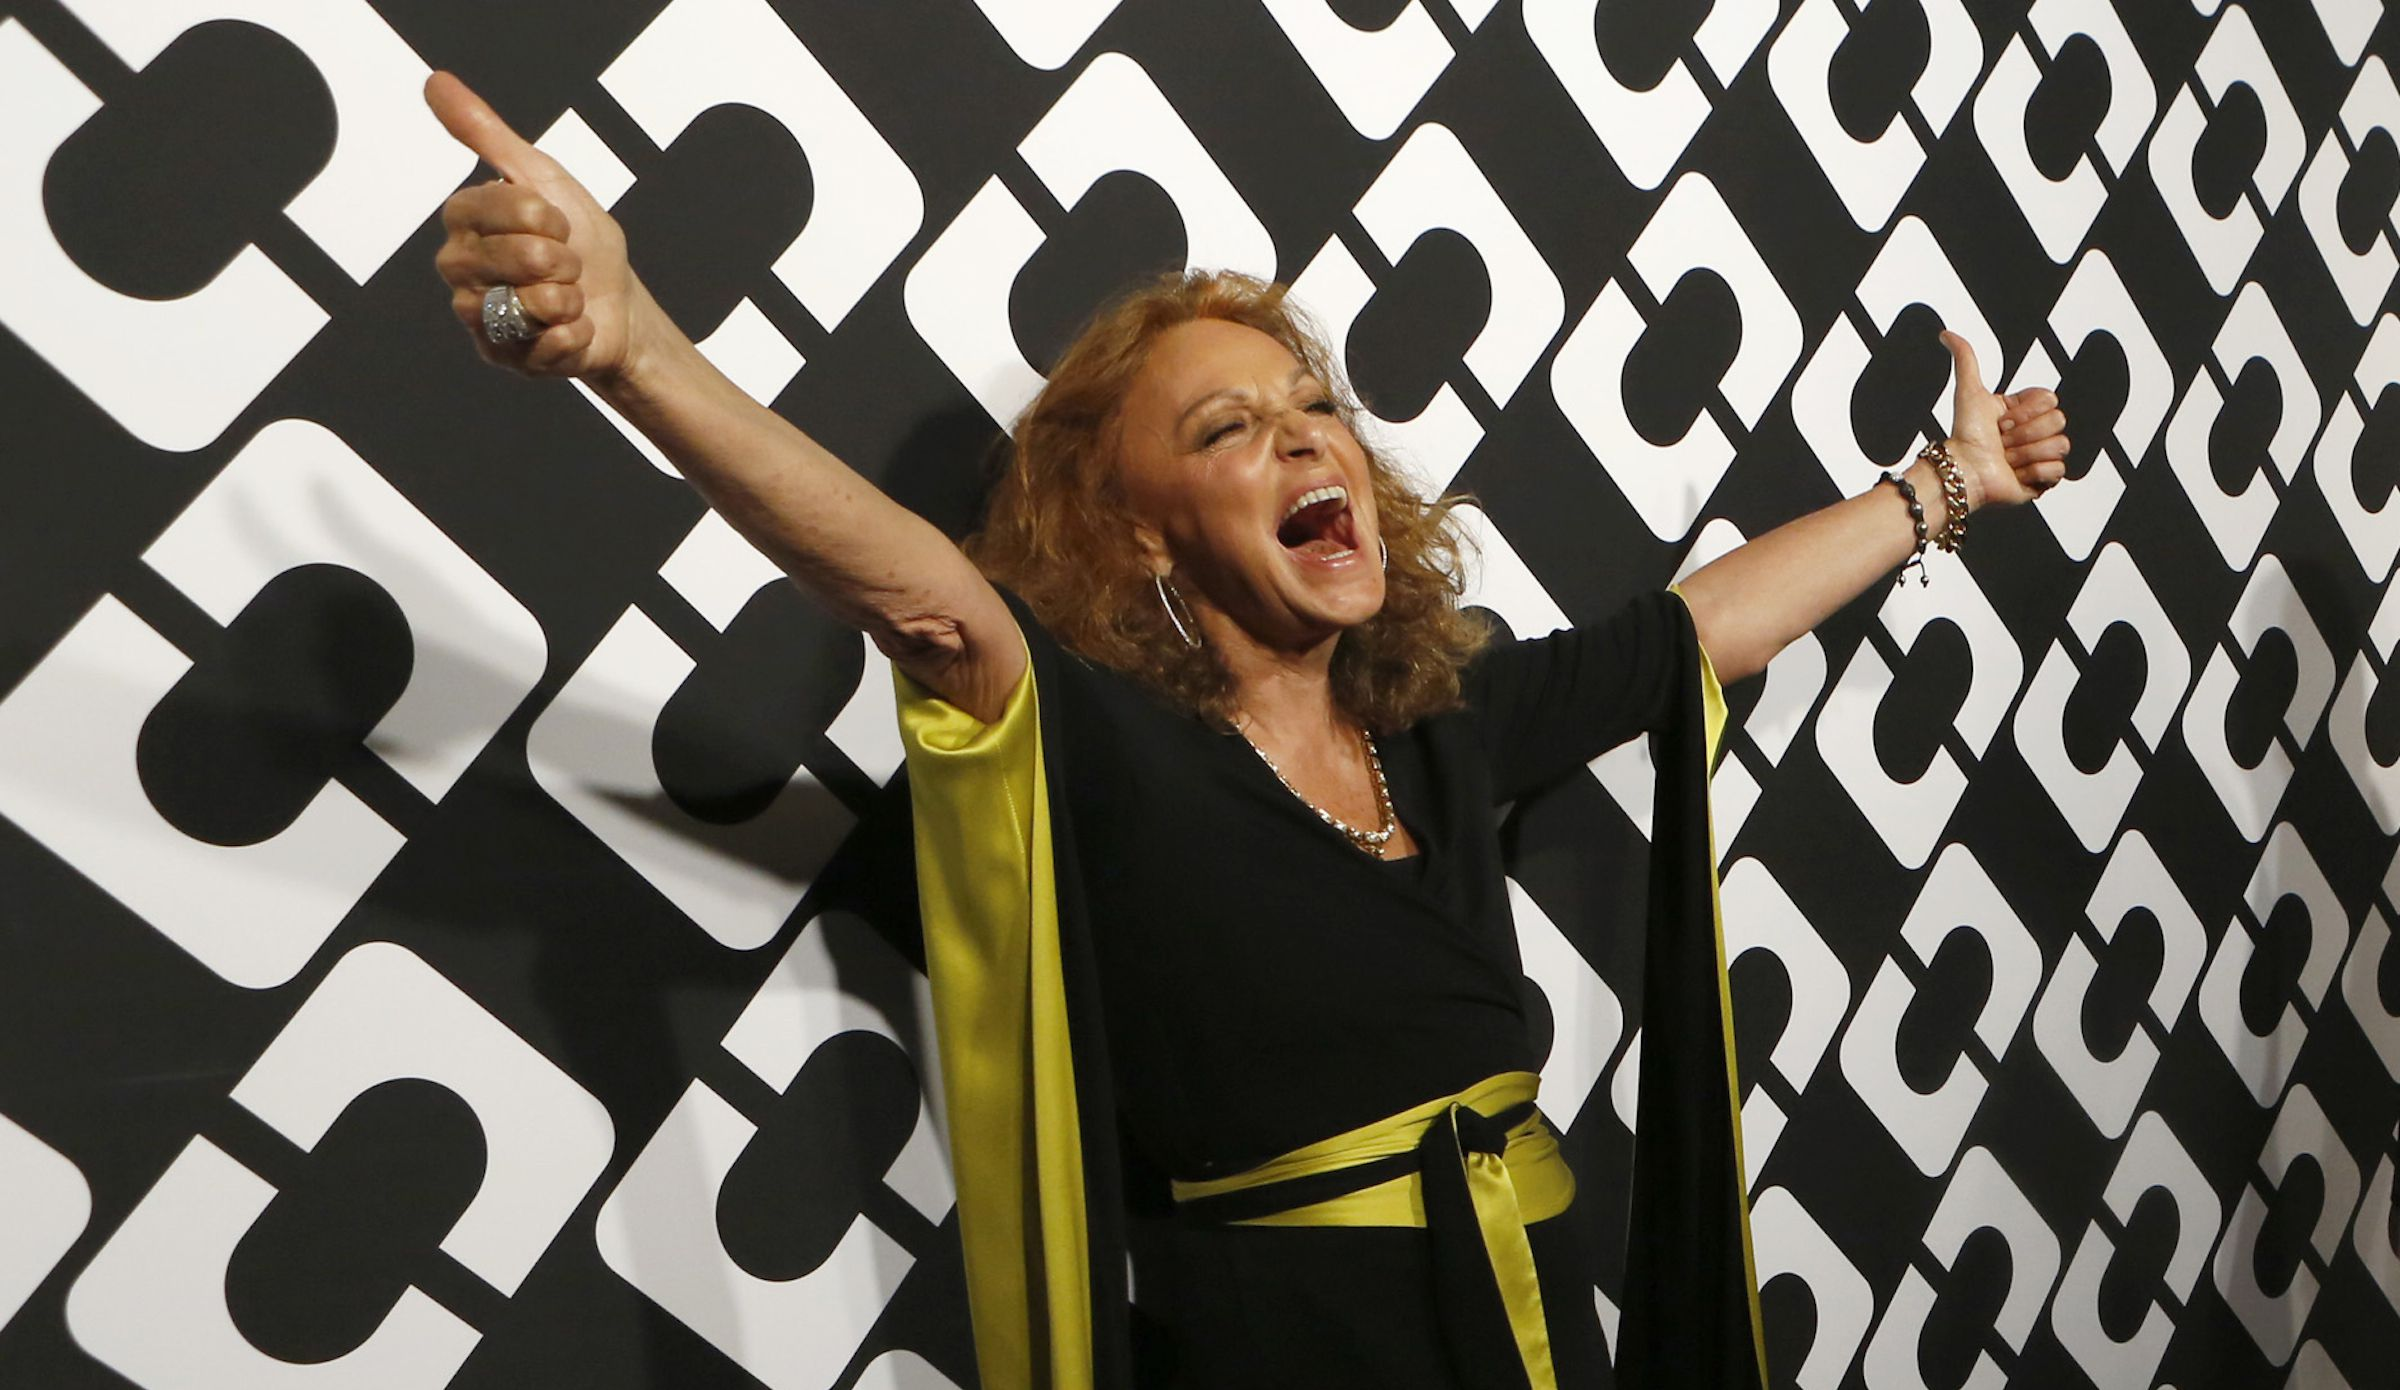 Fashion designer Diane Von Furstenberg poses at the opening of the Journey of a Dress exhibition in Los Angeles, California January 10, 2014.   REUTERS/Mario Anzuoni  (UNITED STATES - Tags: ENTERTAINMENT FASHION) - RTX179AG